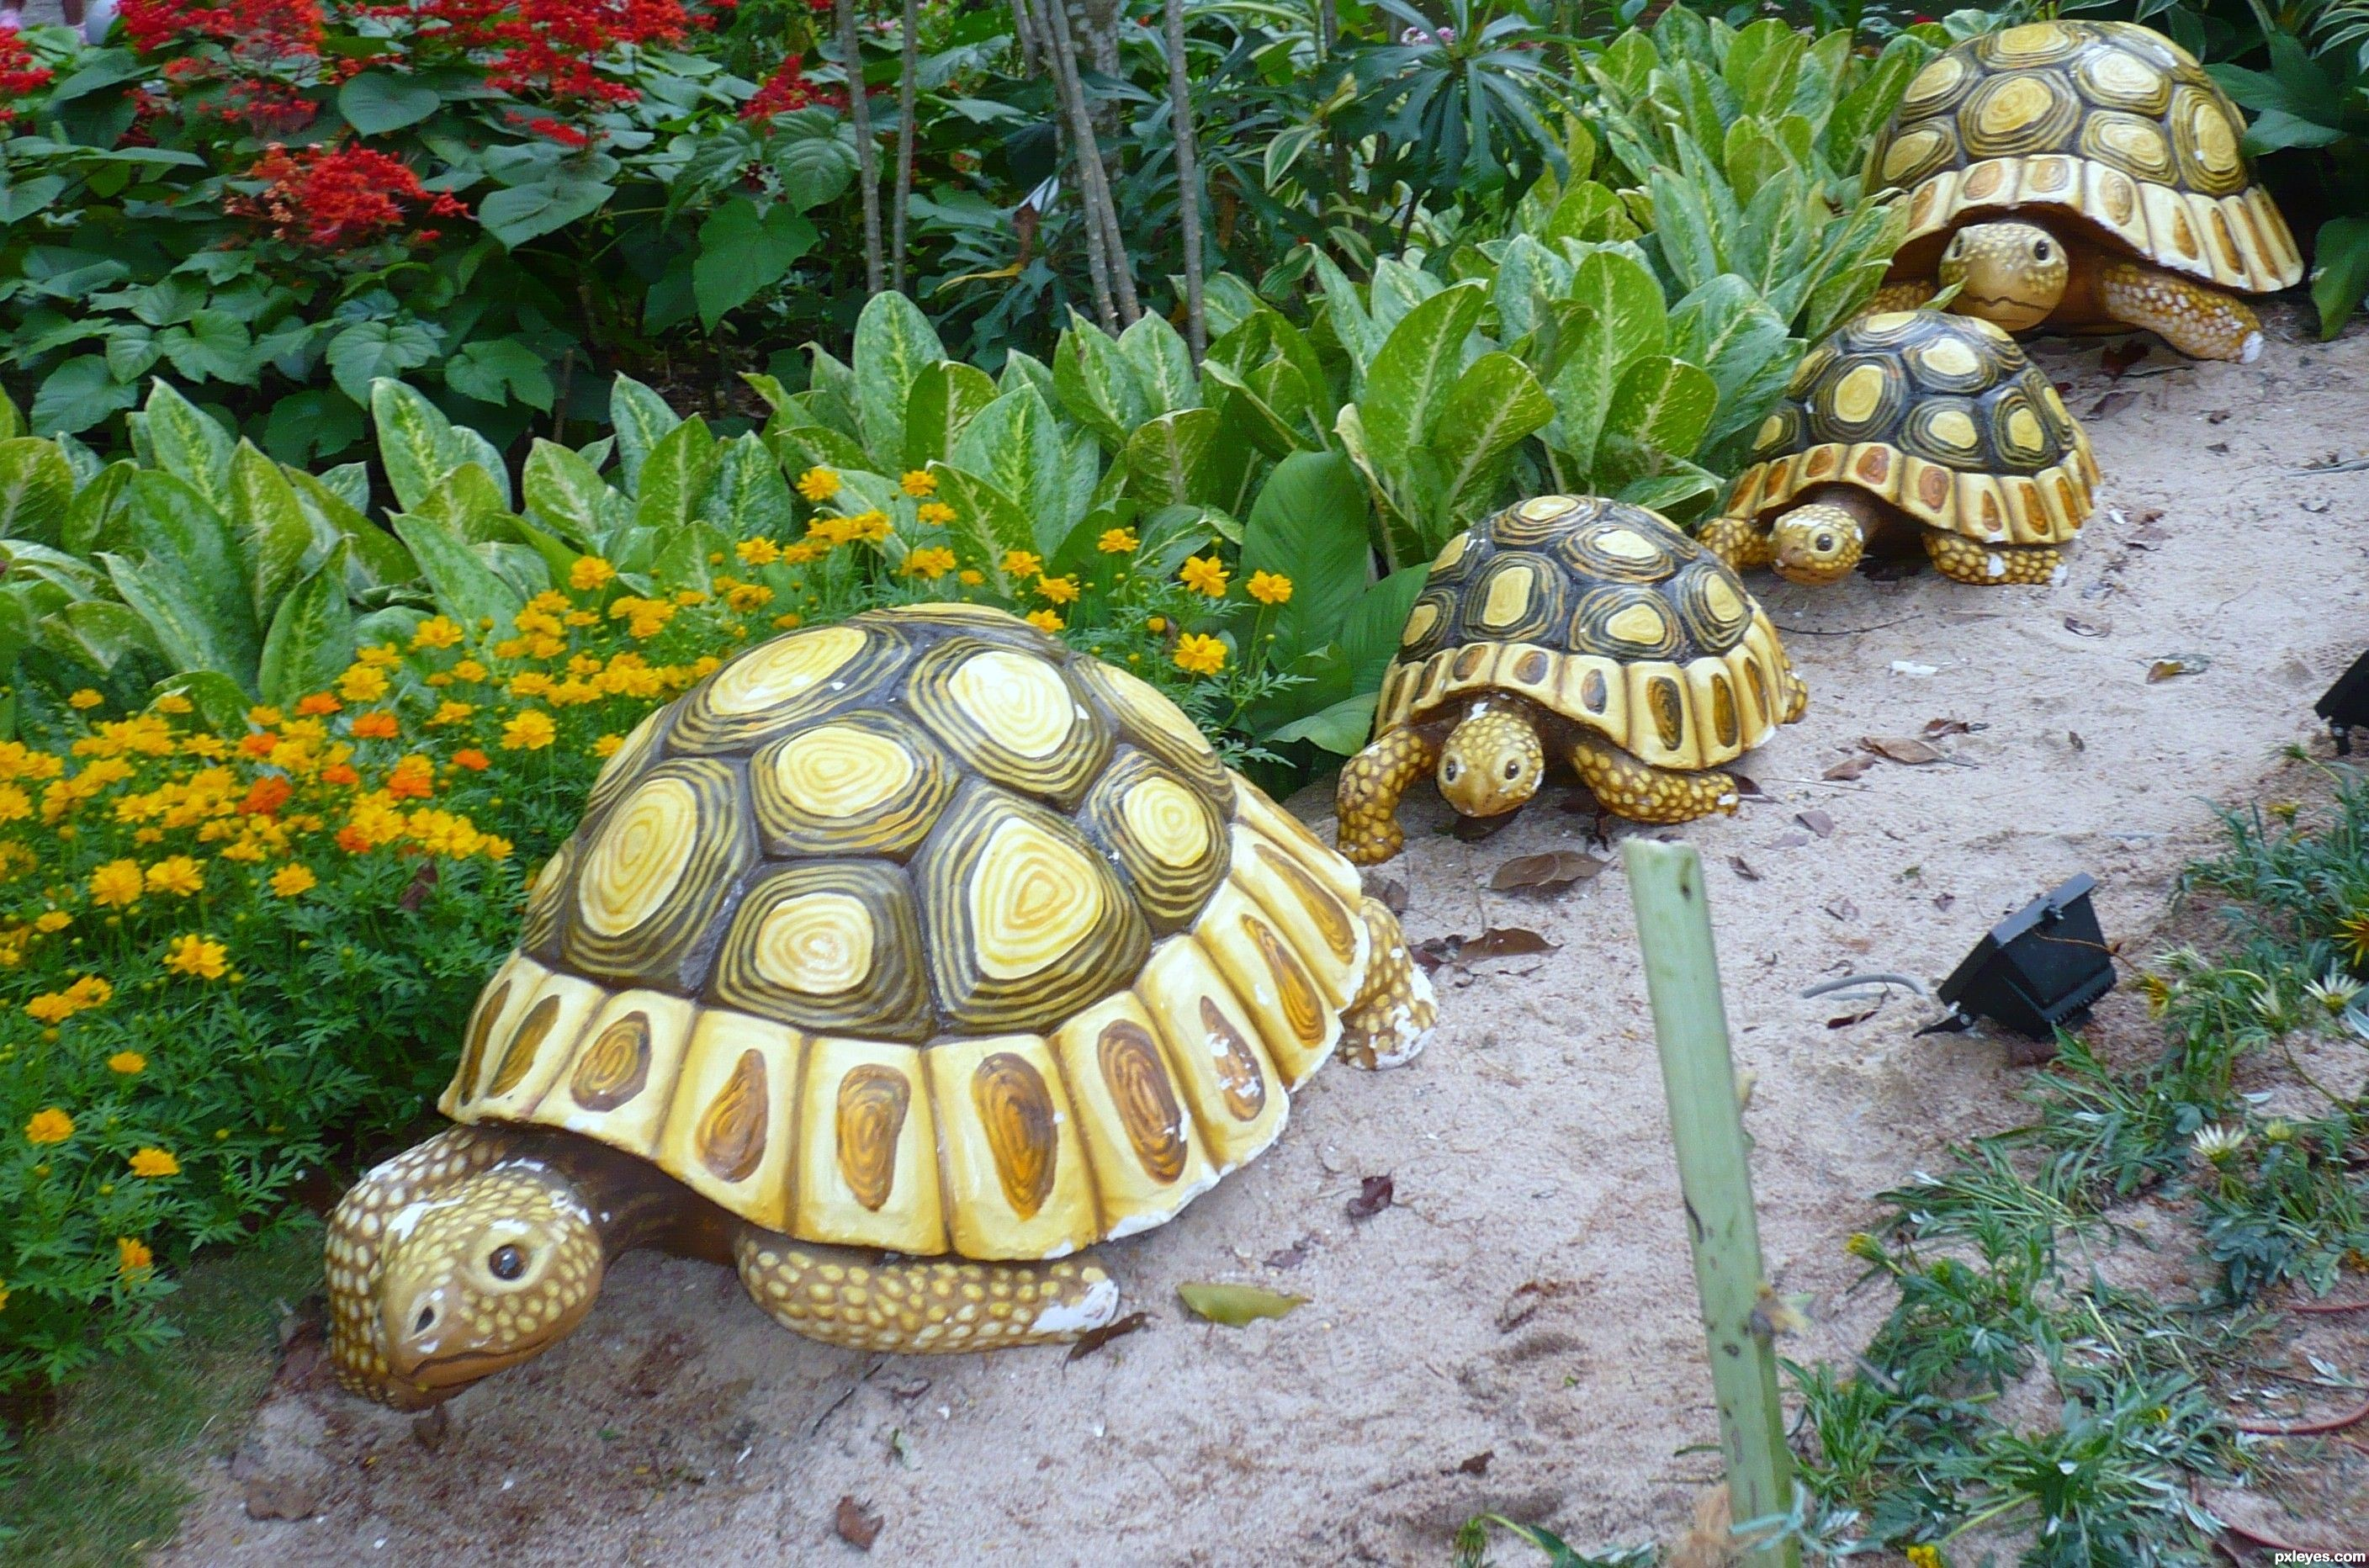 strolling tortoises stone garden ornaments make from a durable resin ...